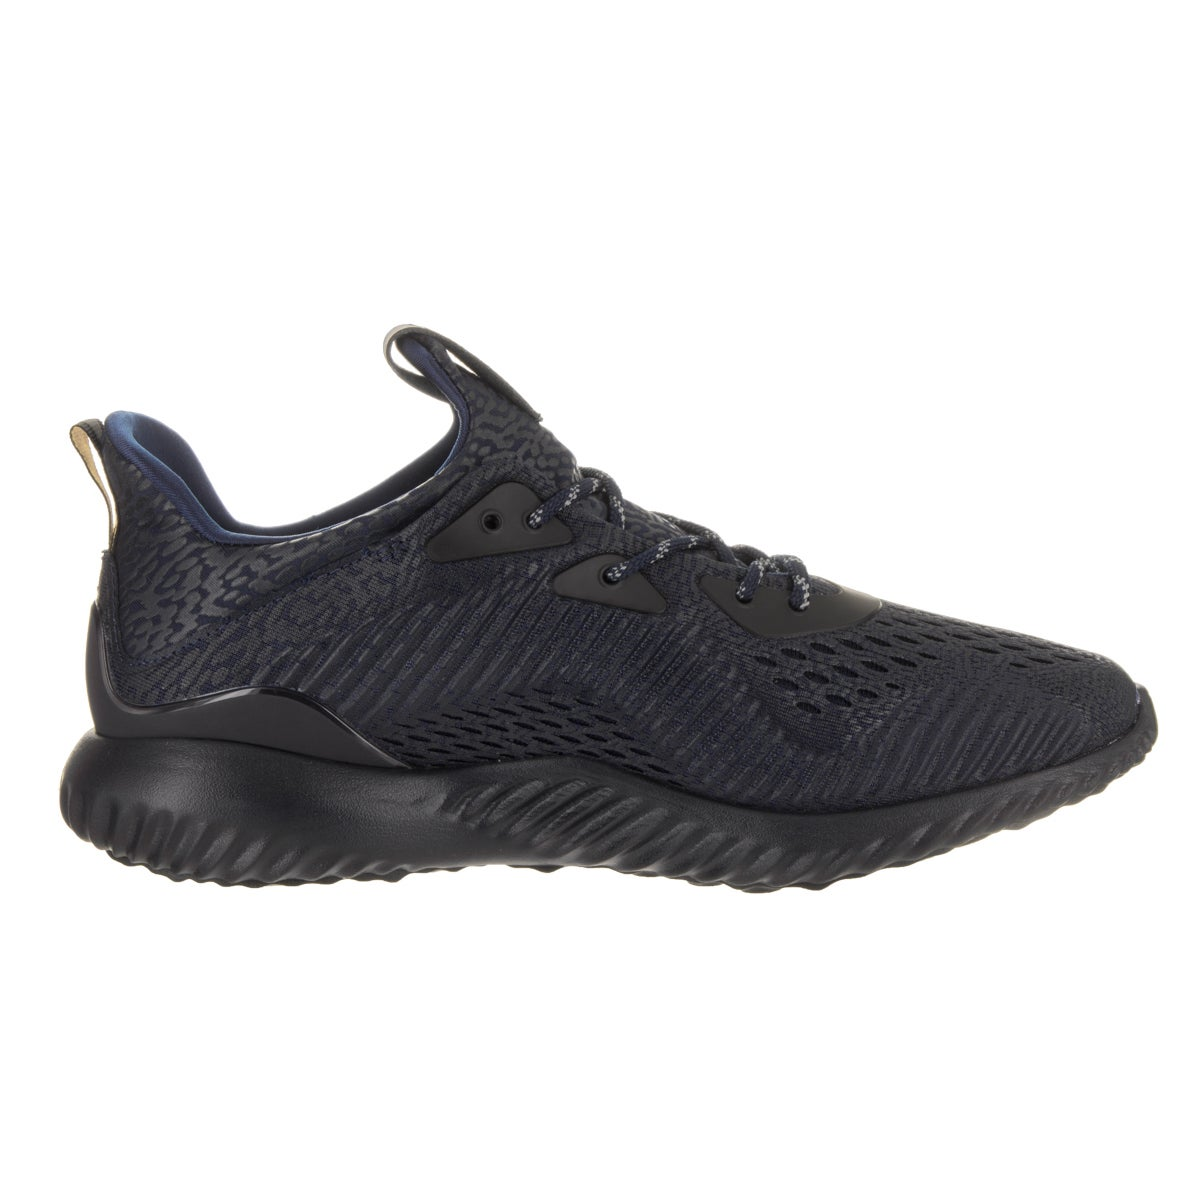 8cc0521db Shop Adidas Men s Alphabounce Ams Mystery Blue Mesh Running Shoe - Free  Shipping Today - Overstock.com - 14645766